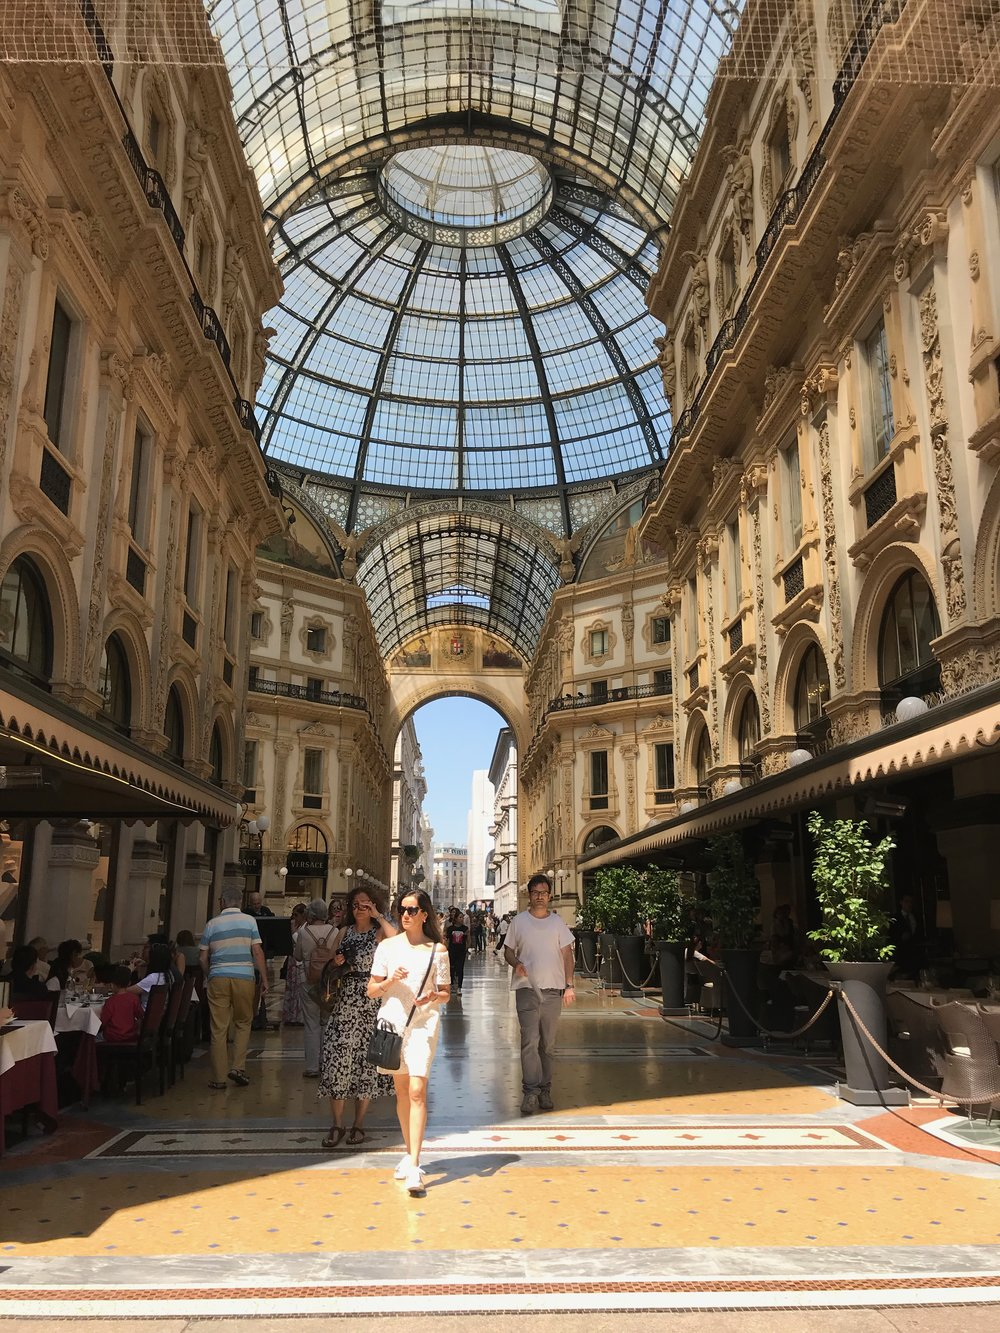 One day in late June, we spent a few hours in Milan and had lunch in the    Vittorio Emanuele mall   . It was touristy and pricey, yes, but so beautiful!